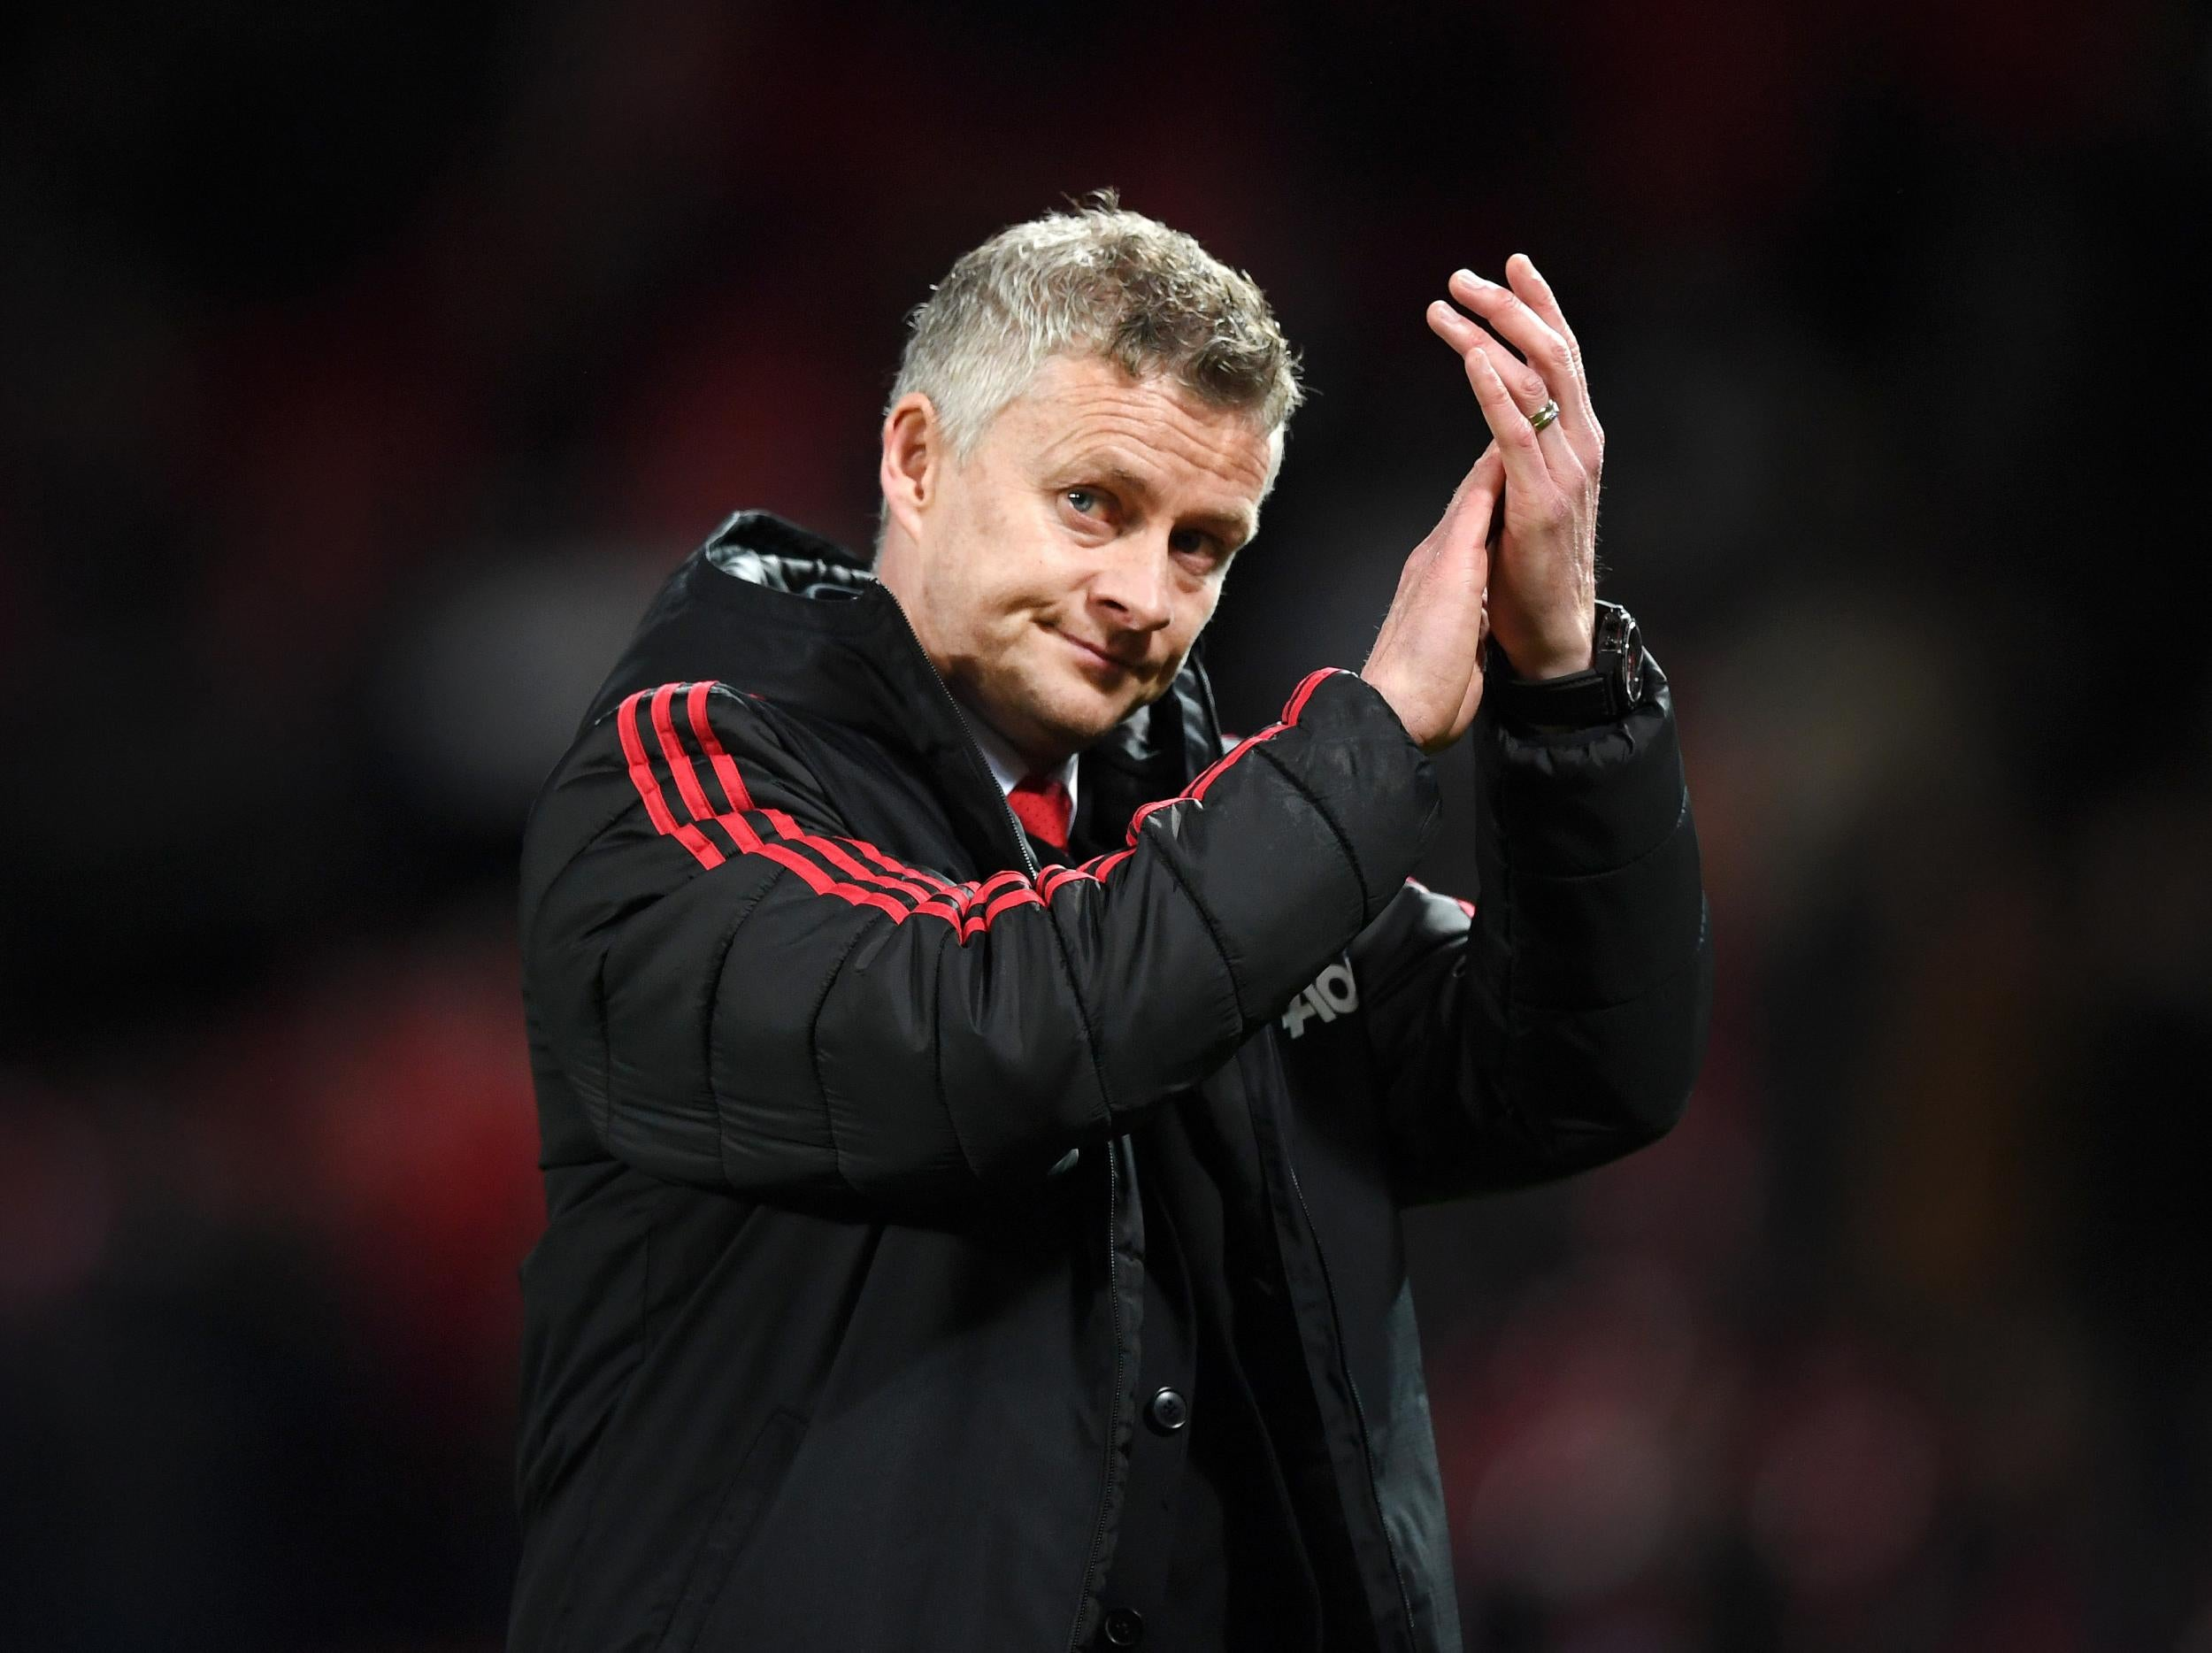 What are Ole Gunnar Solskjaer's Manchester United trying to be?